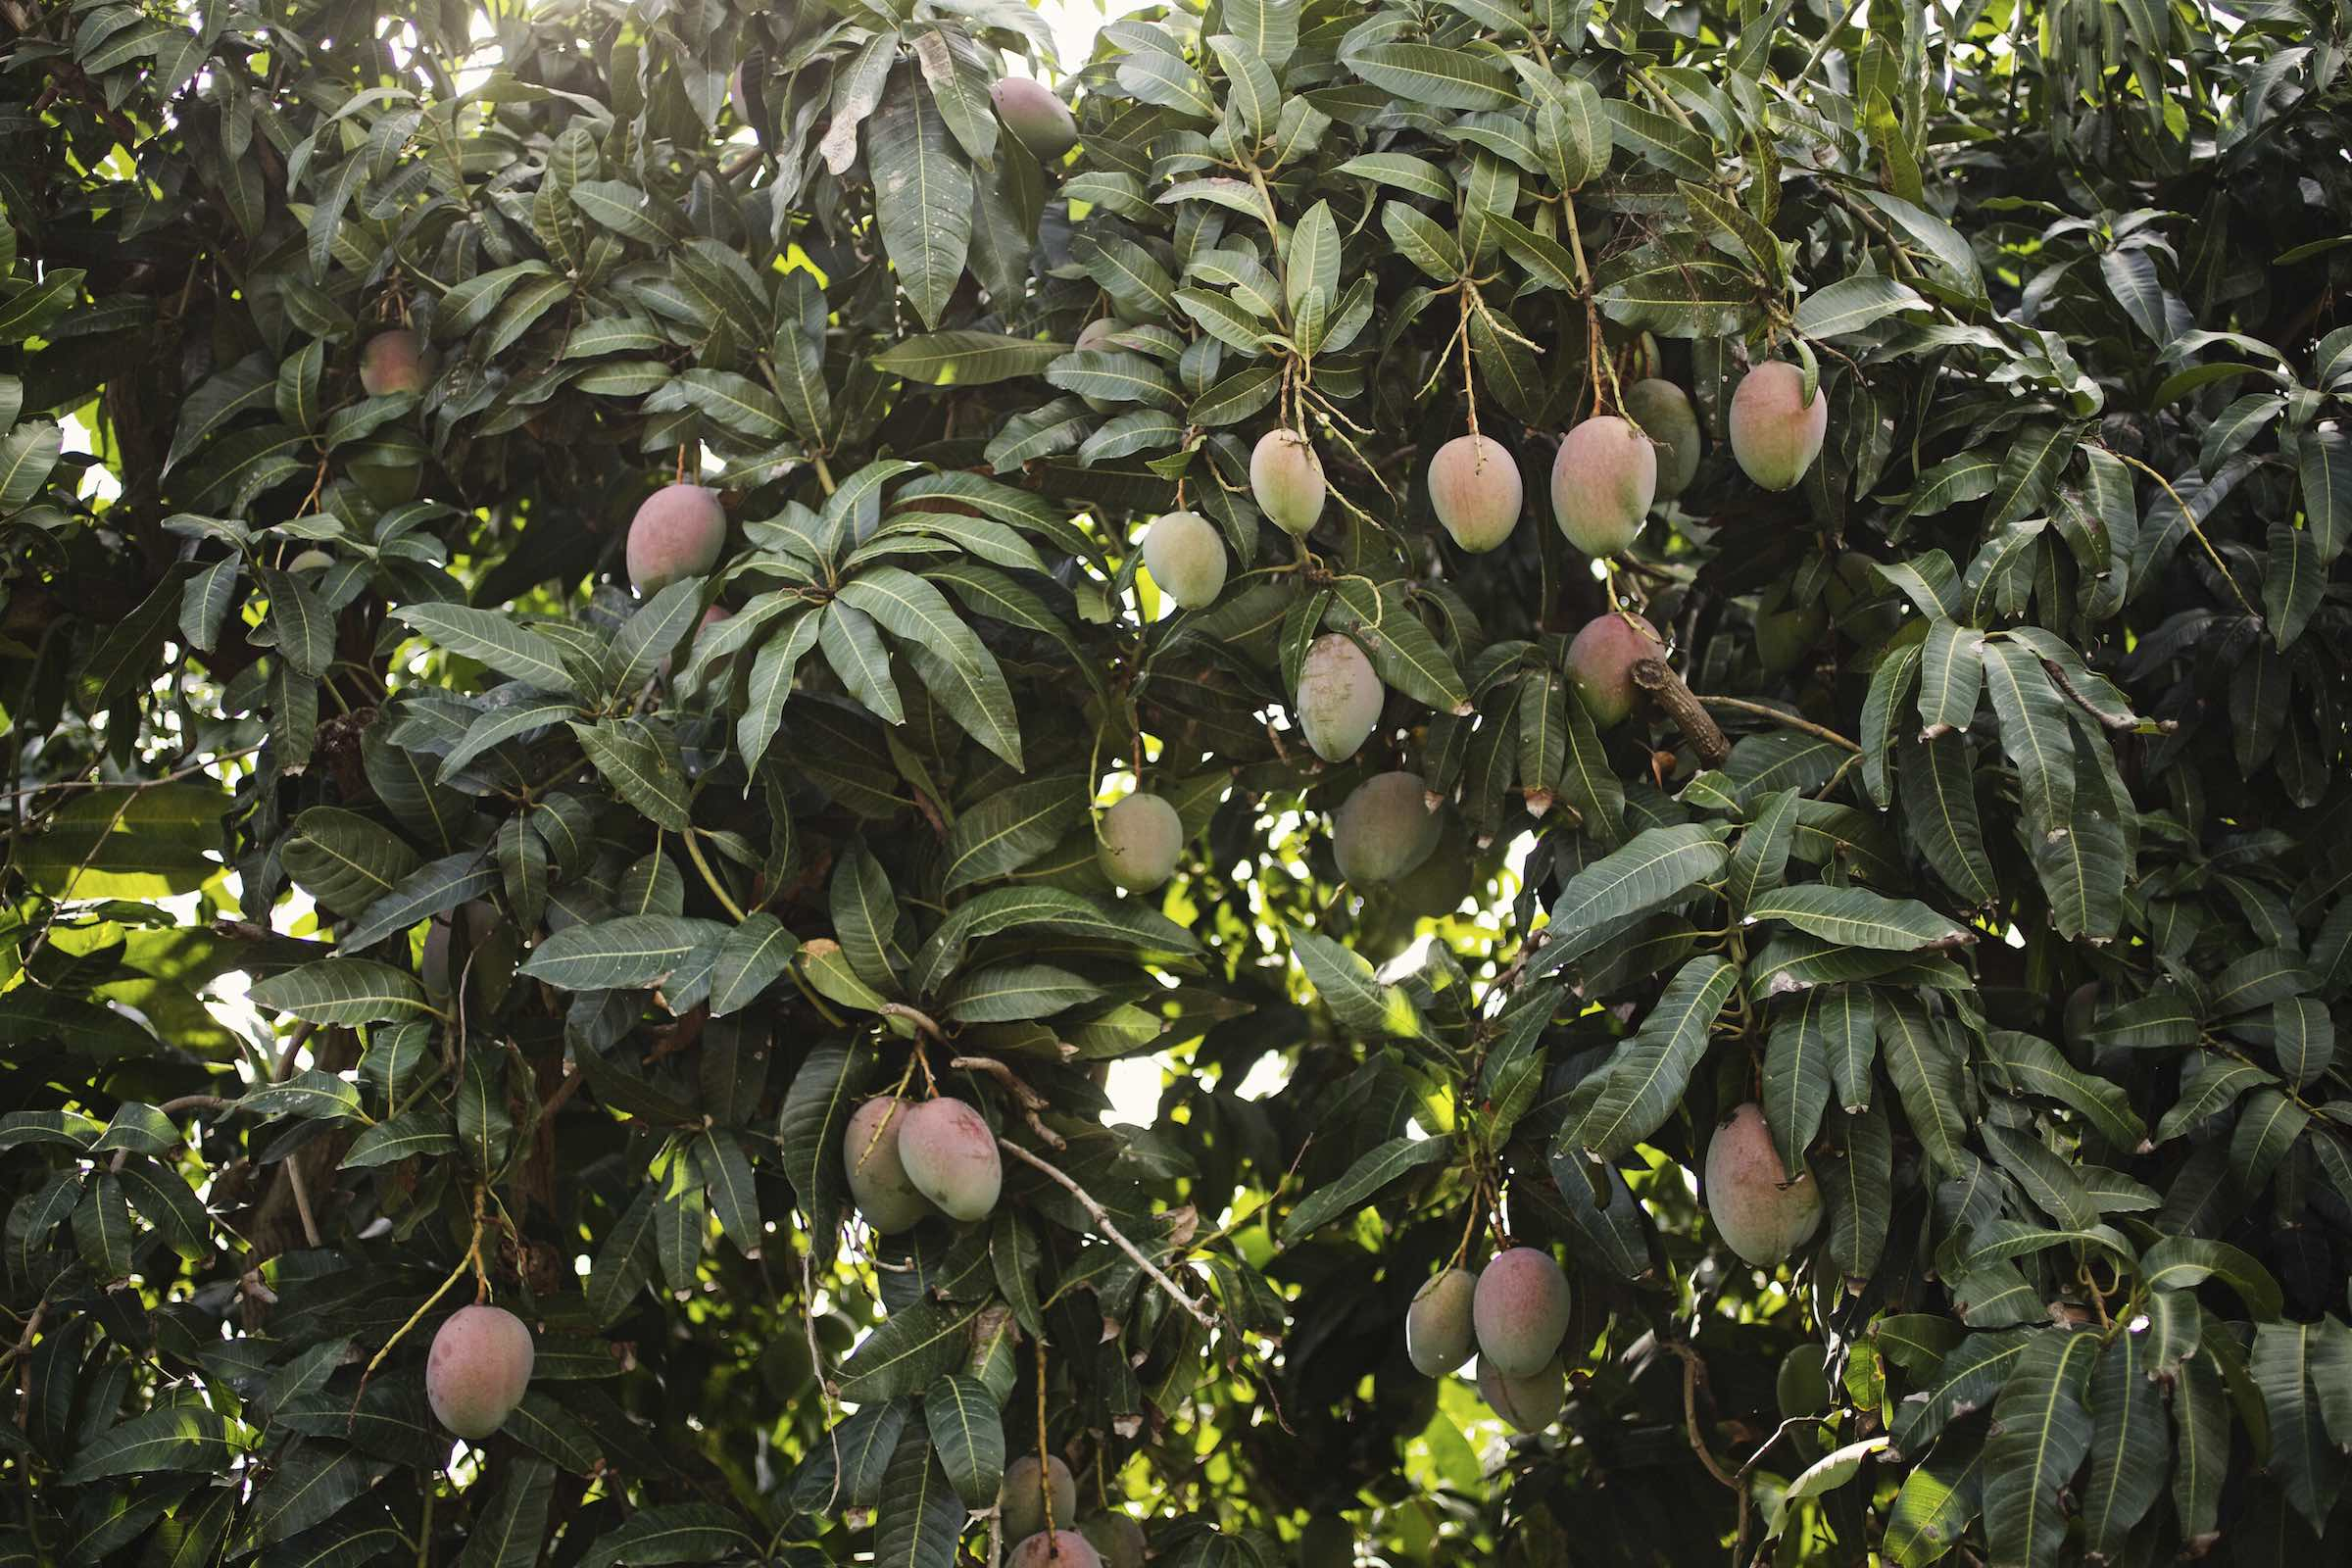 Jody Horton Photography - Mangos hanging from a tree, ready to harvest.